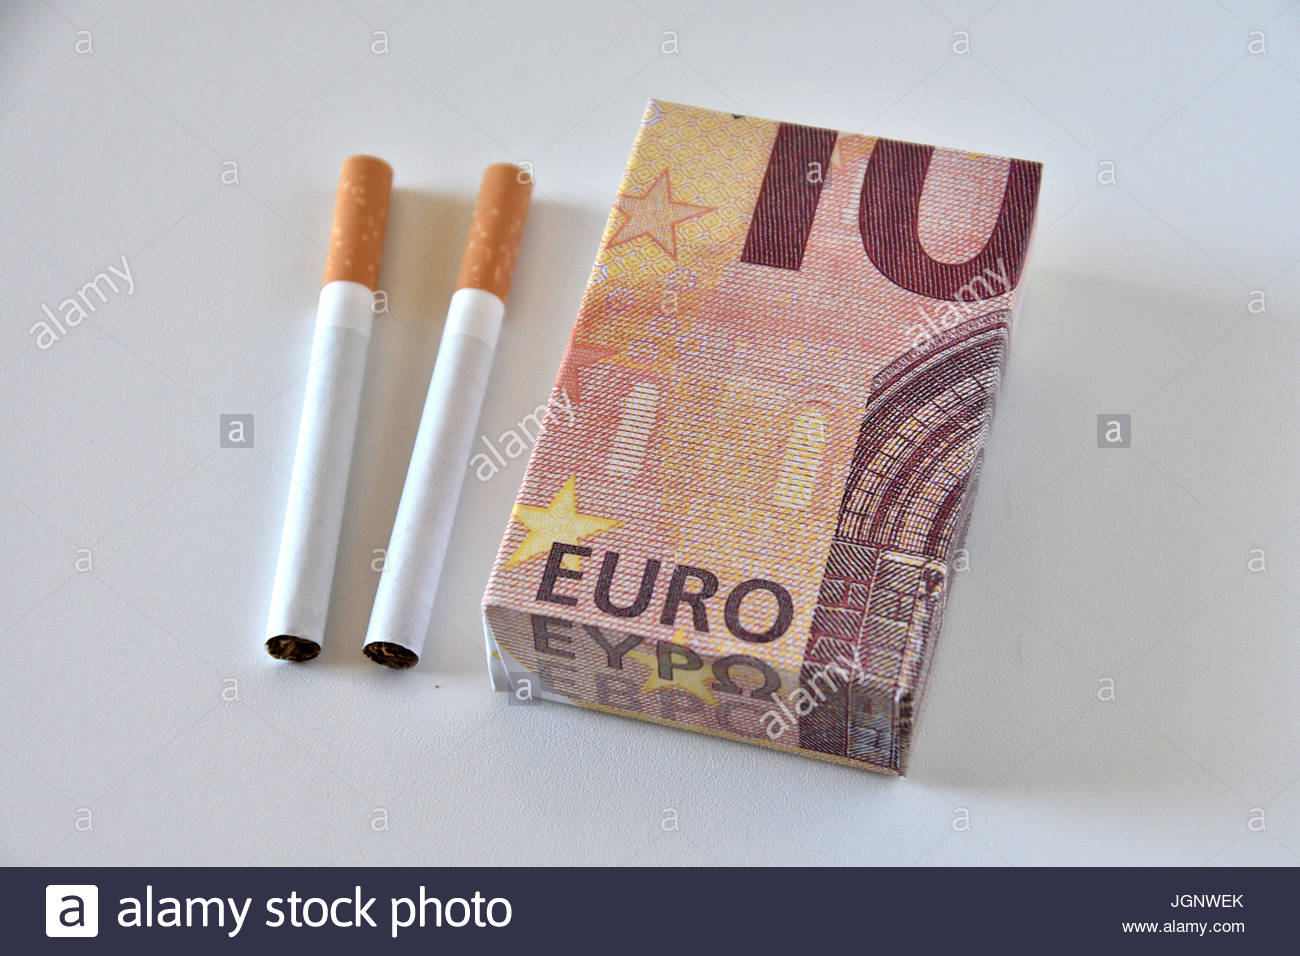 Where can i buy cheap cigarettes Viceroy in the UK